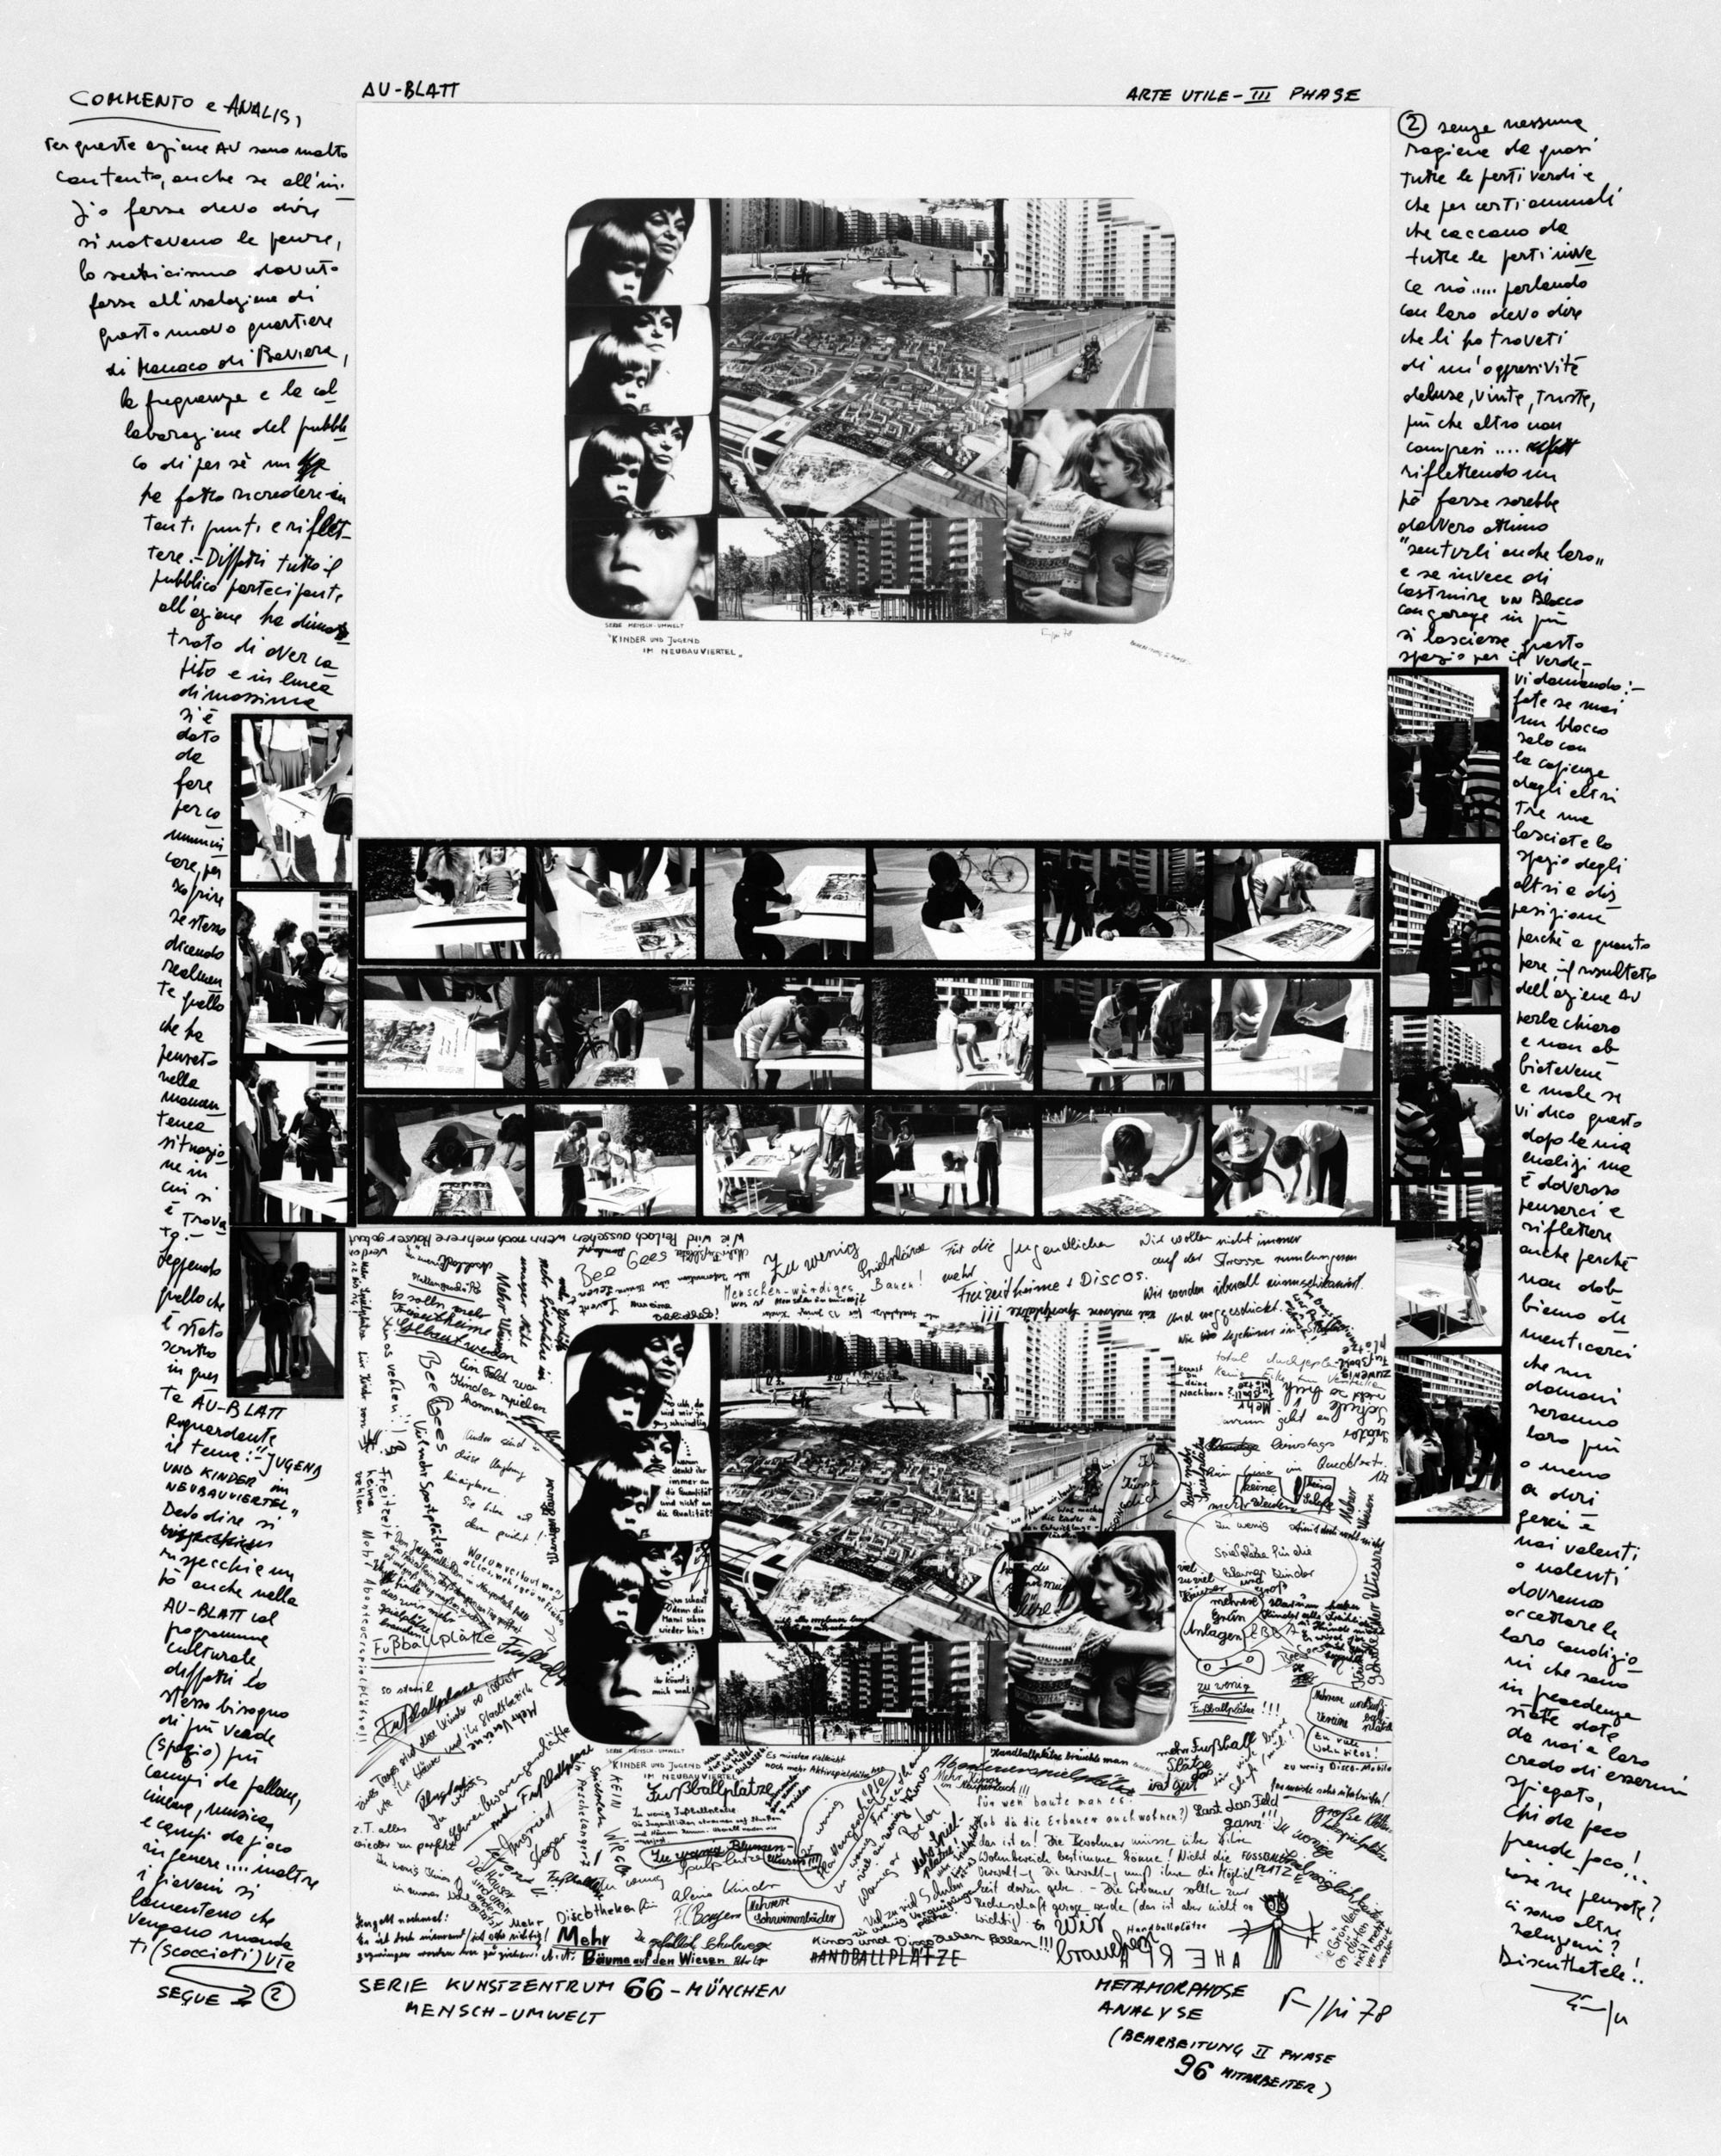 A large white sheet with several photo collages and lots of handwritten text around them.